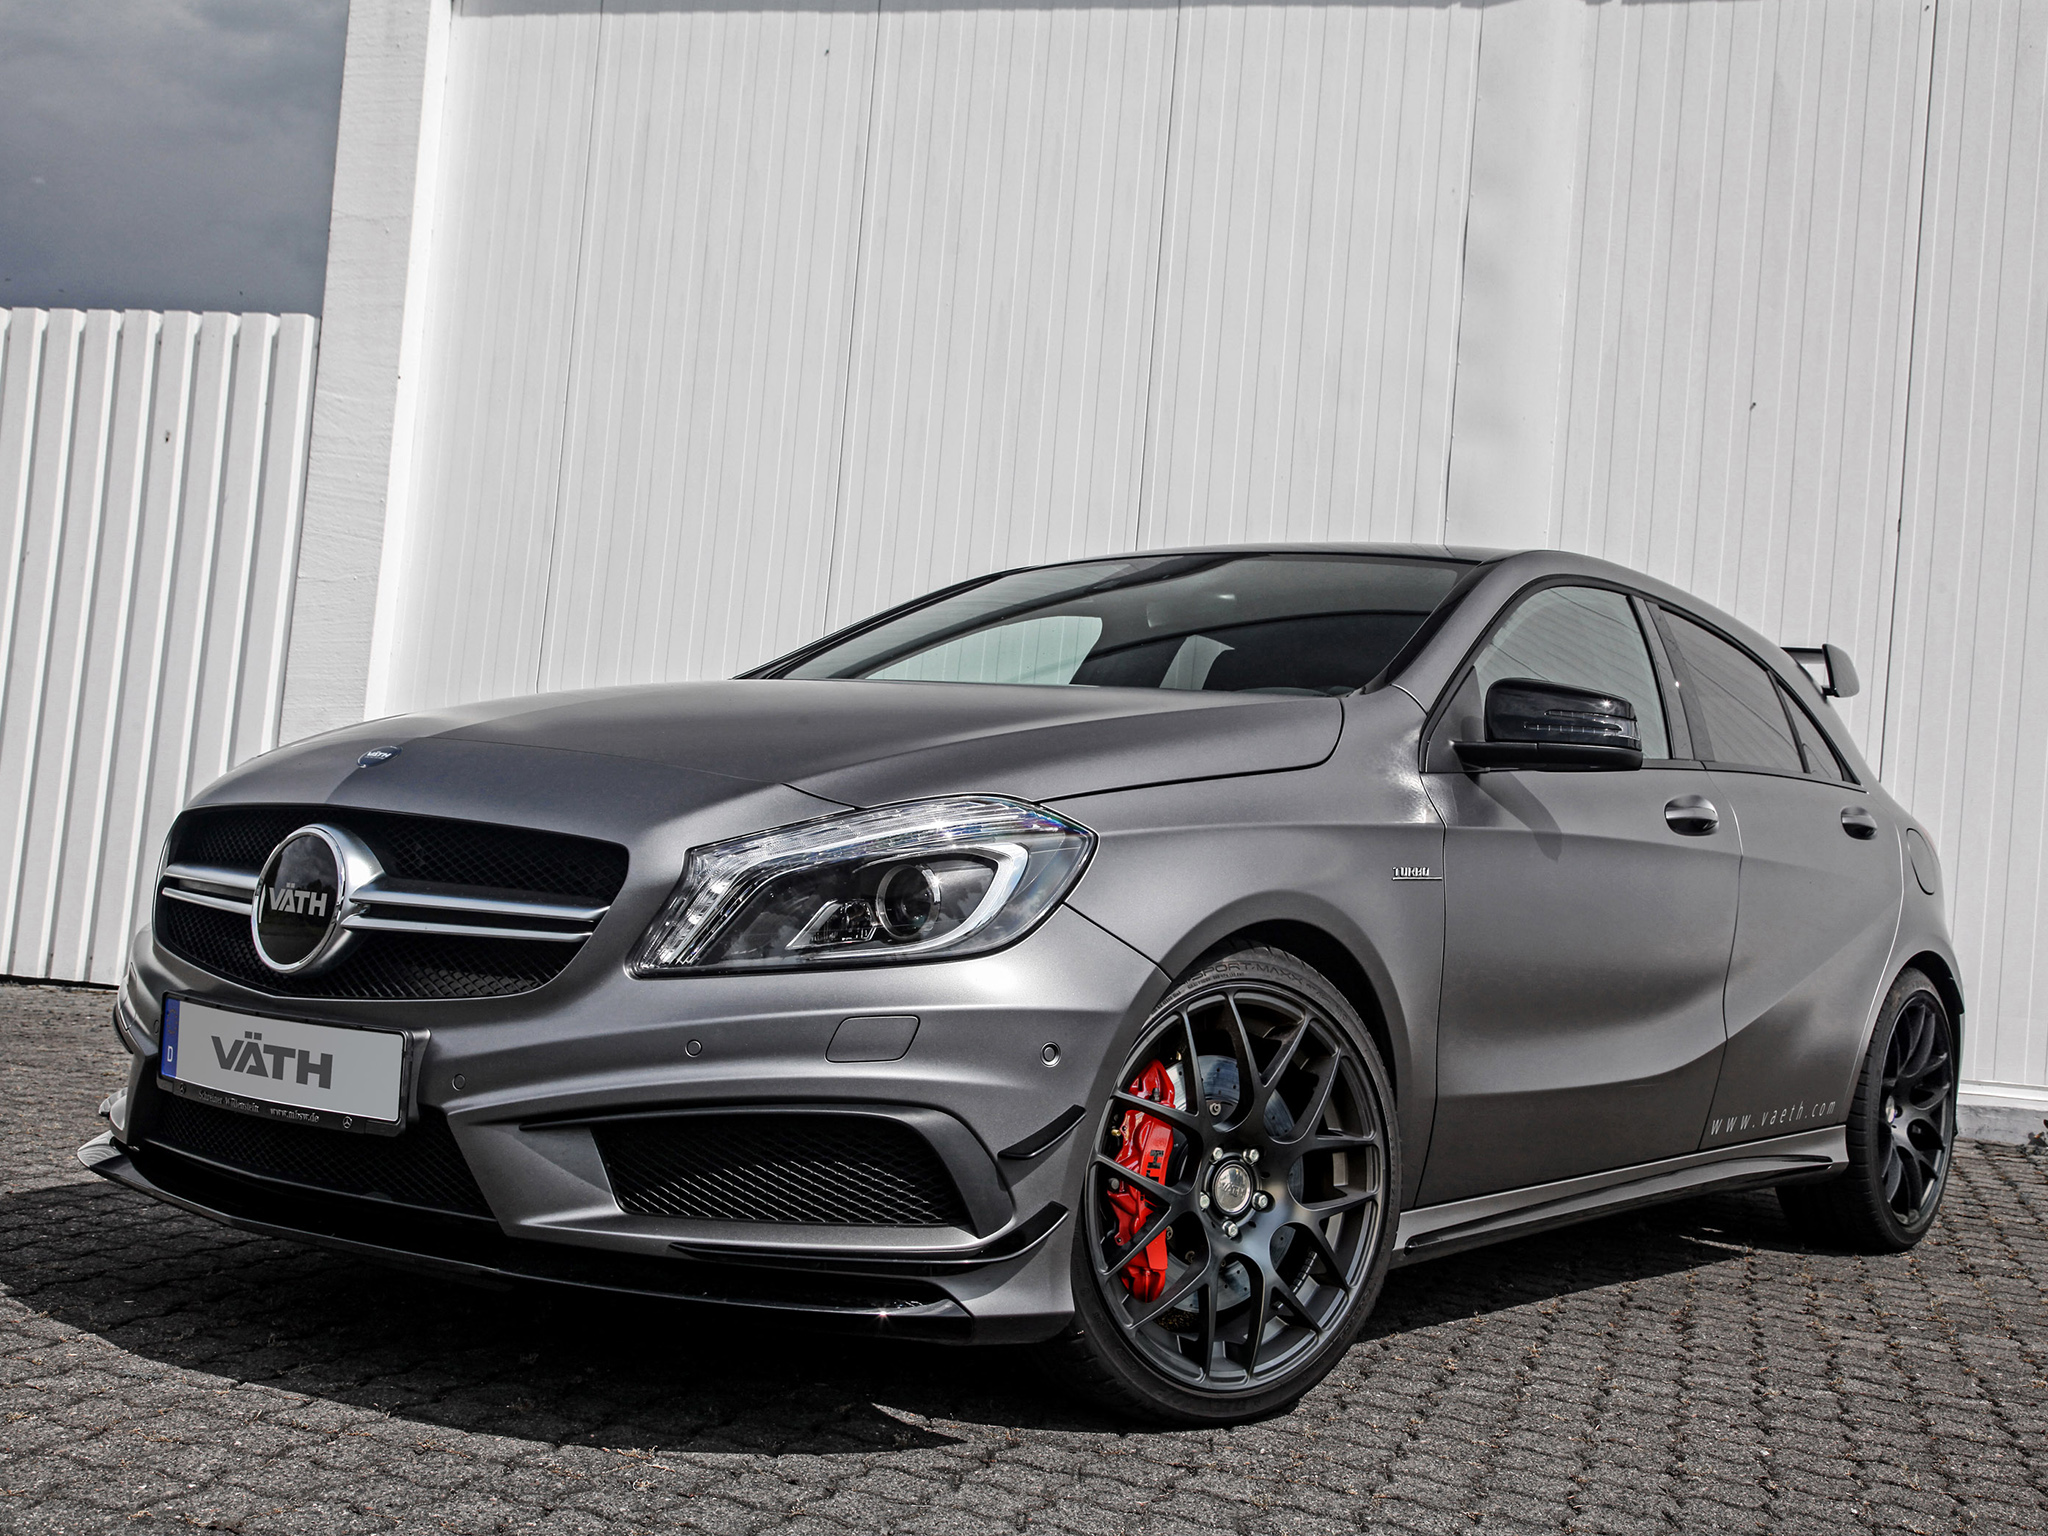 Mercedes benz a 45 amg tuned by vath to 425 hp autoevolution for Mercedes benz tuner